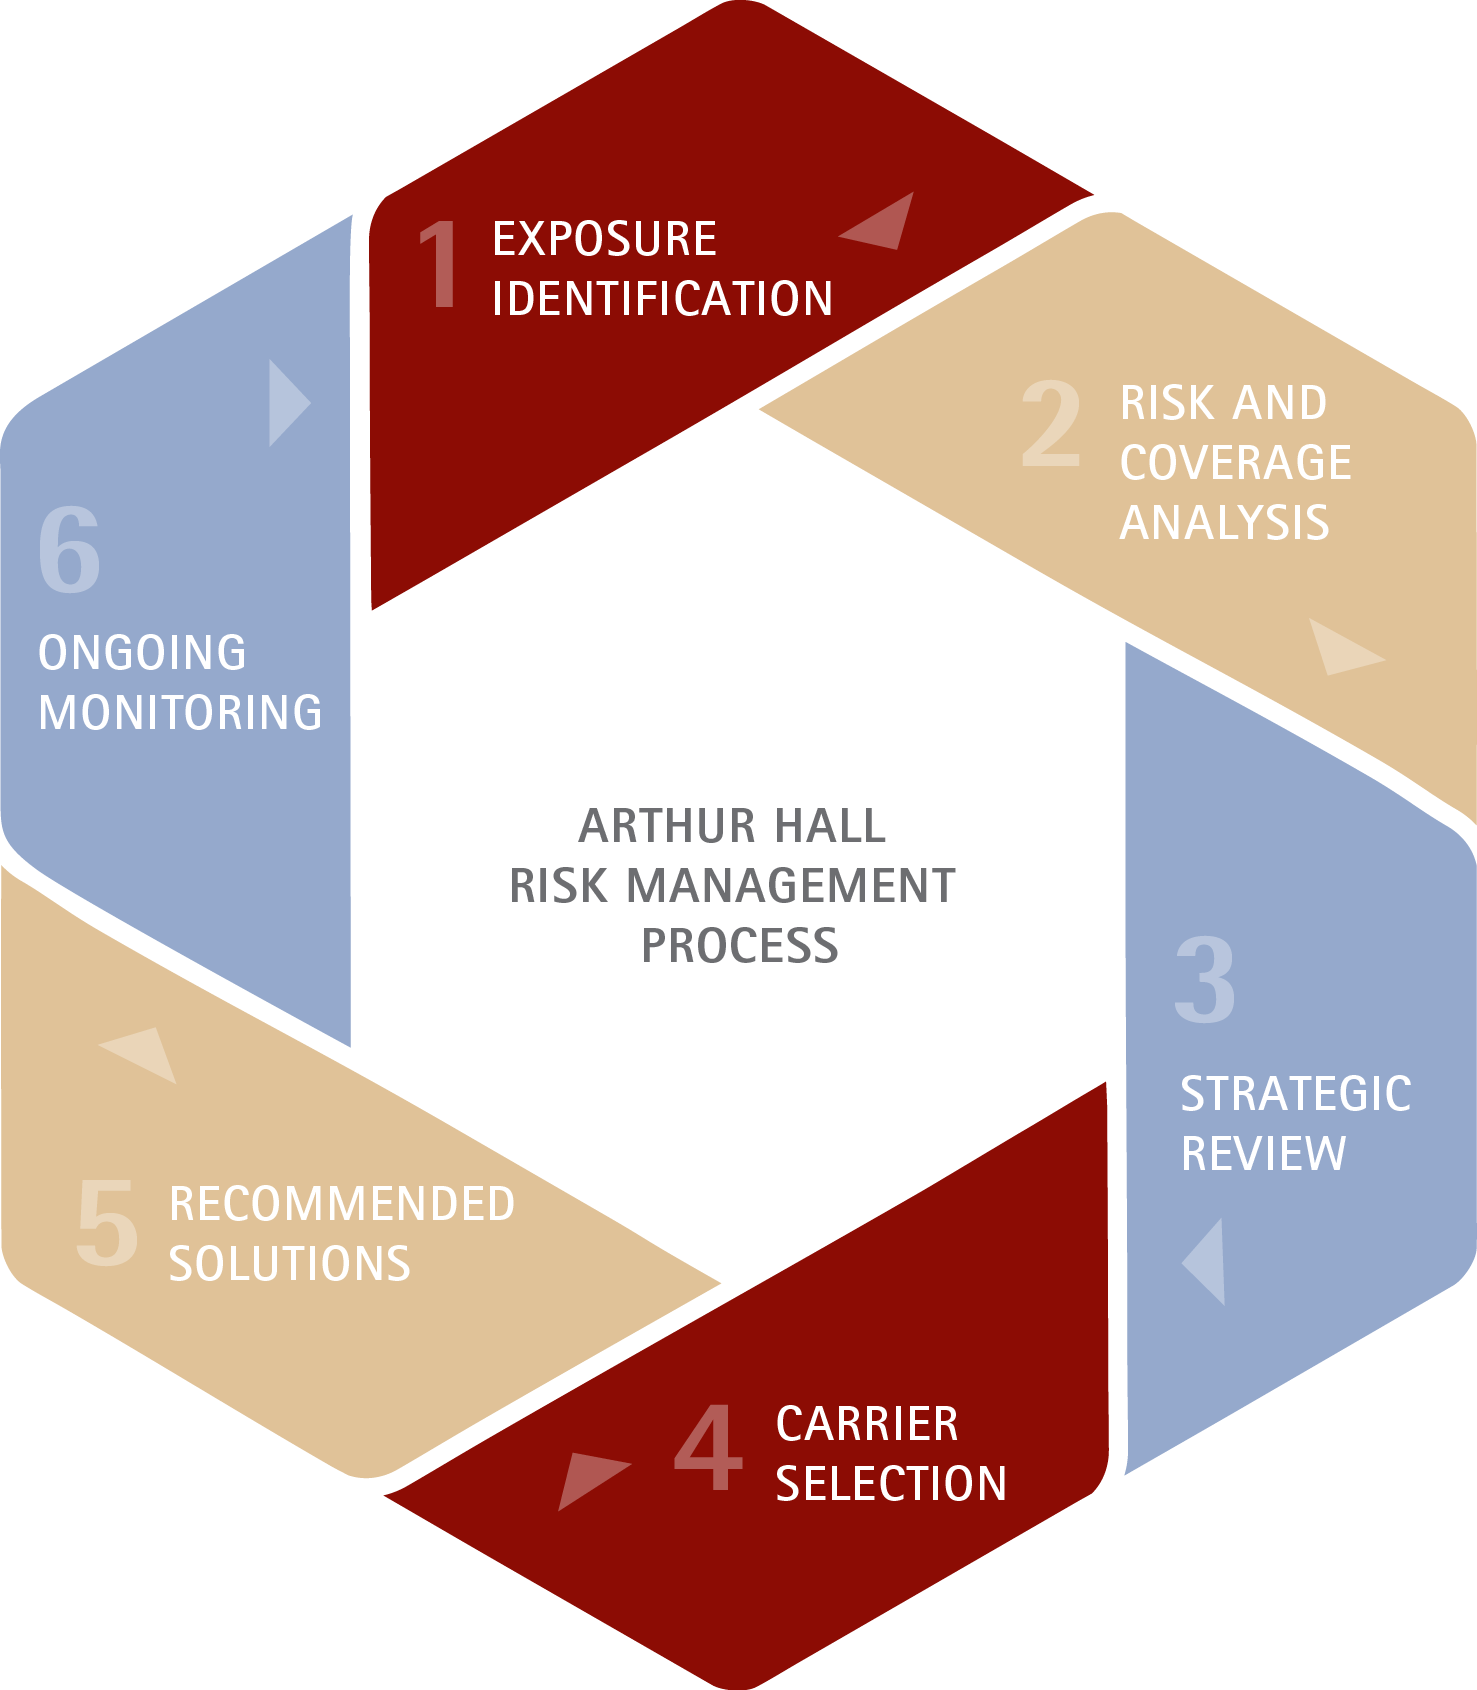 the risk management process management essay Clearrisk's risk management process consists of five easy steps: identify the risks, measure them for frequency and severity, examine potential solutions, implement a chosen solution, and monitor the results.